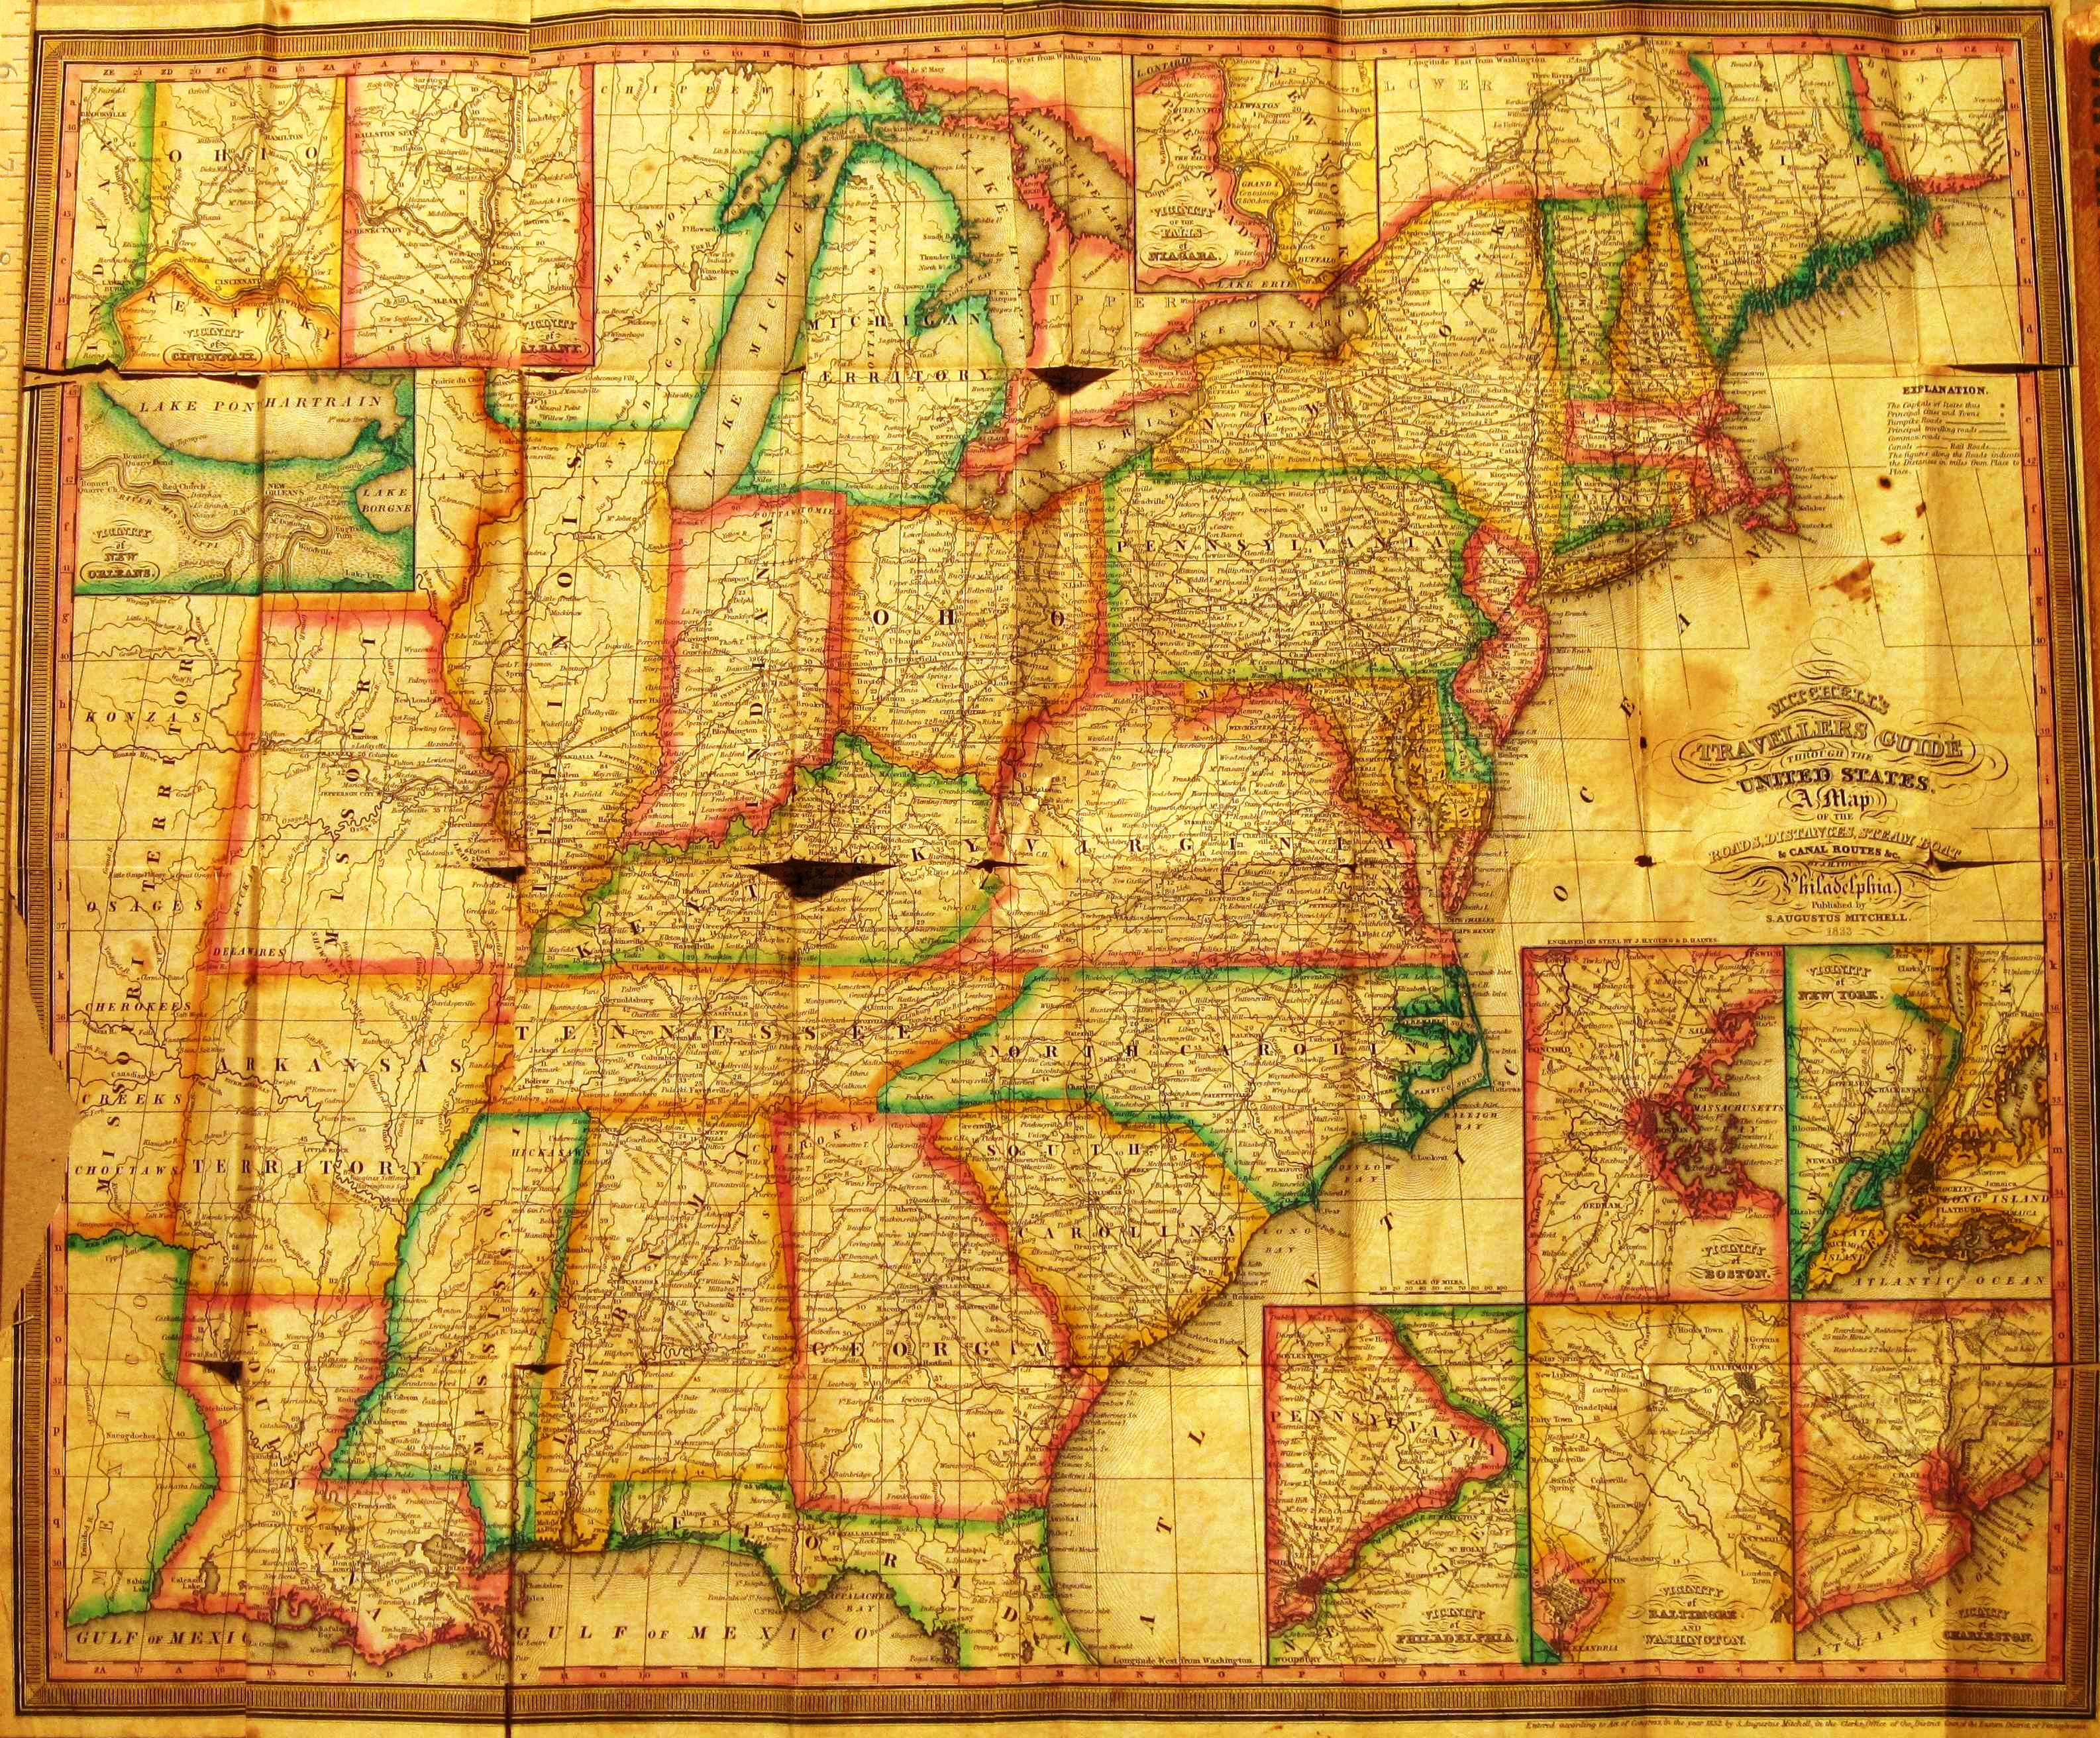 Pennsylvania in Early Pocket Maps